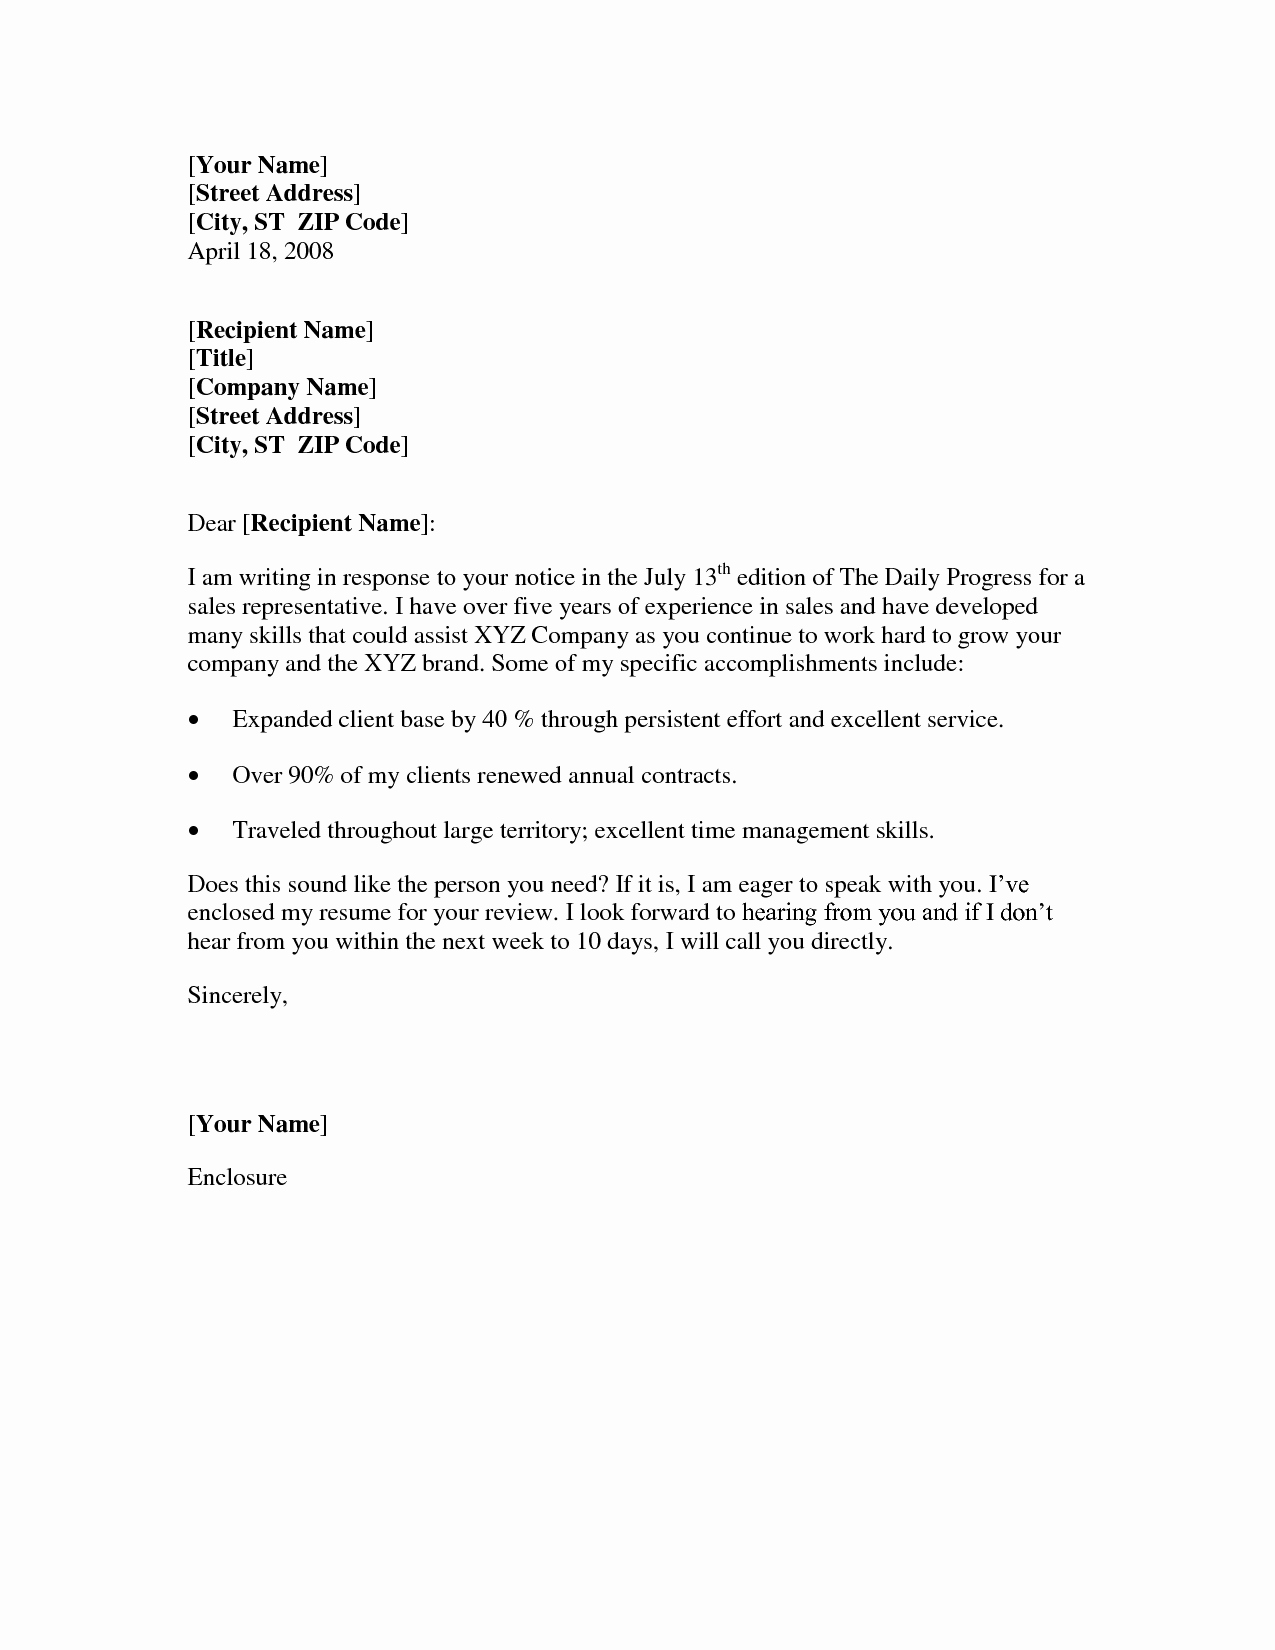 Resume and Cover Letter Template Inspirational 10 Best Of Basic Cover Letter for Resume Sample